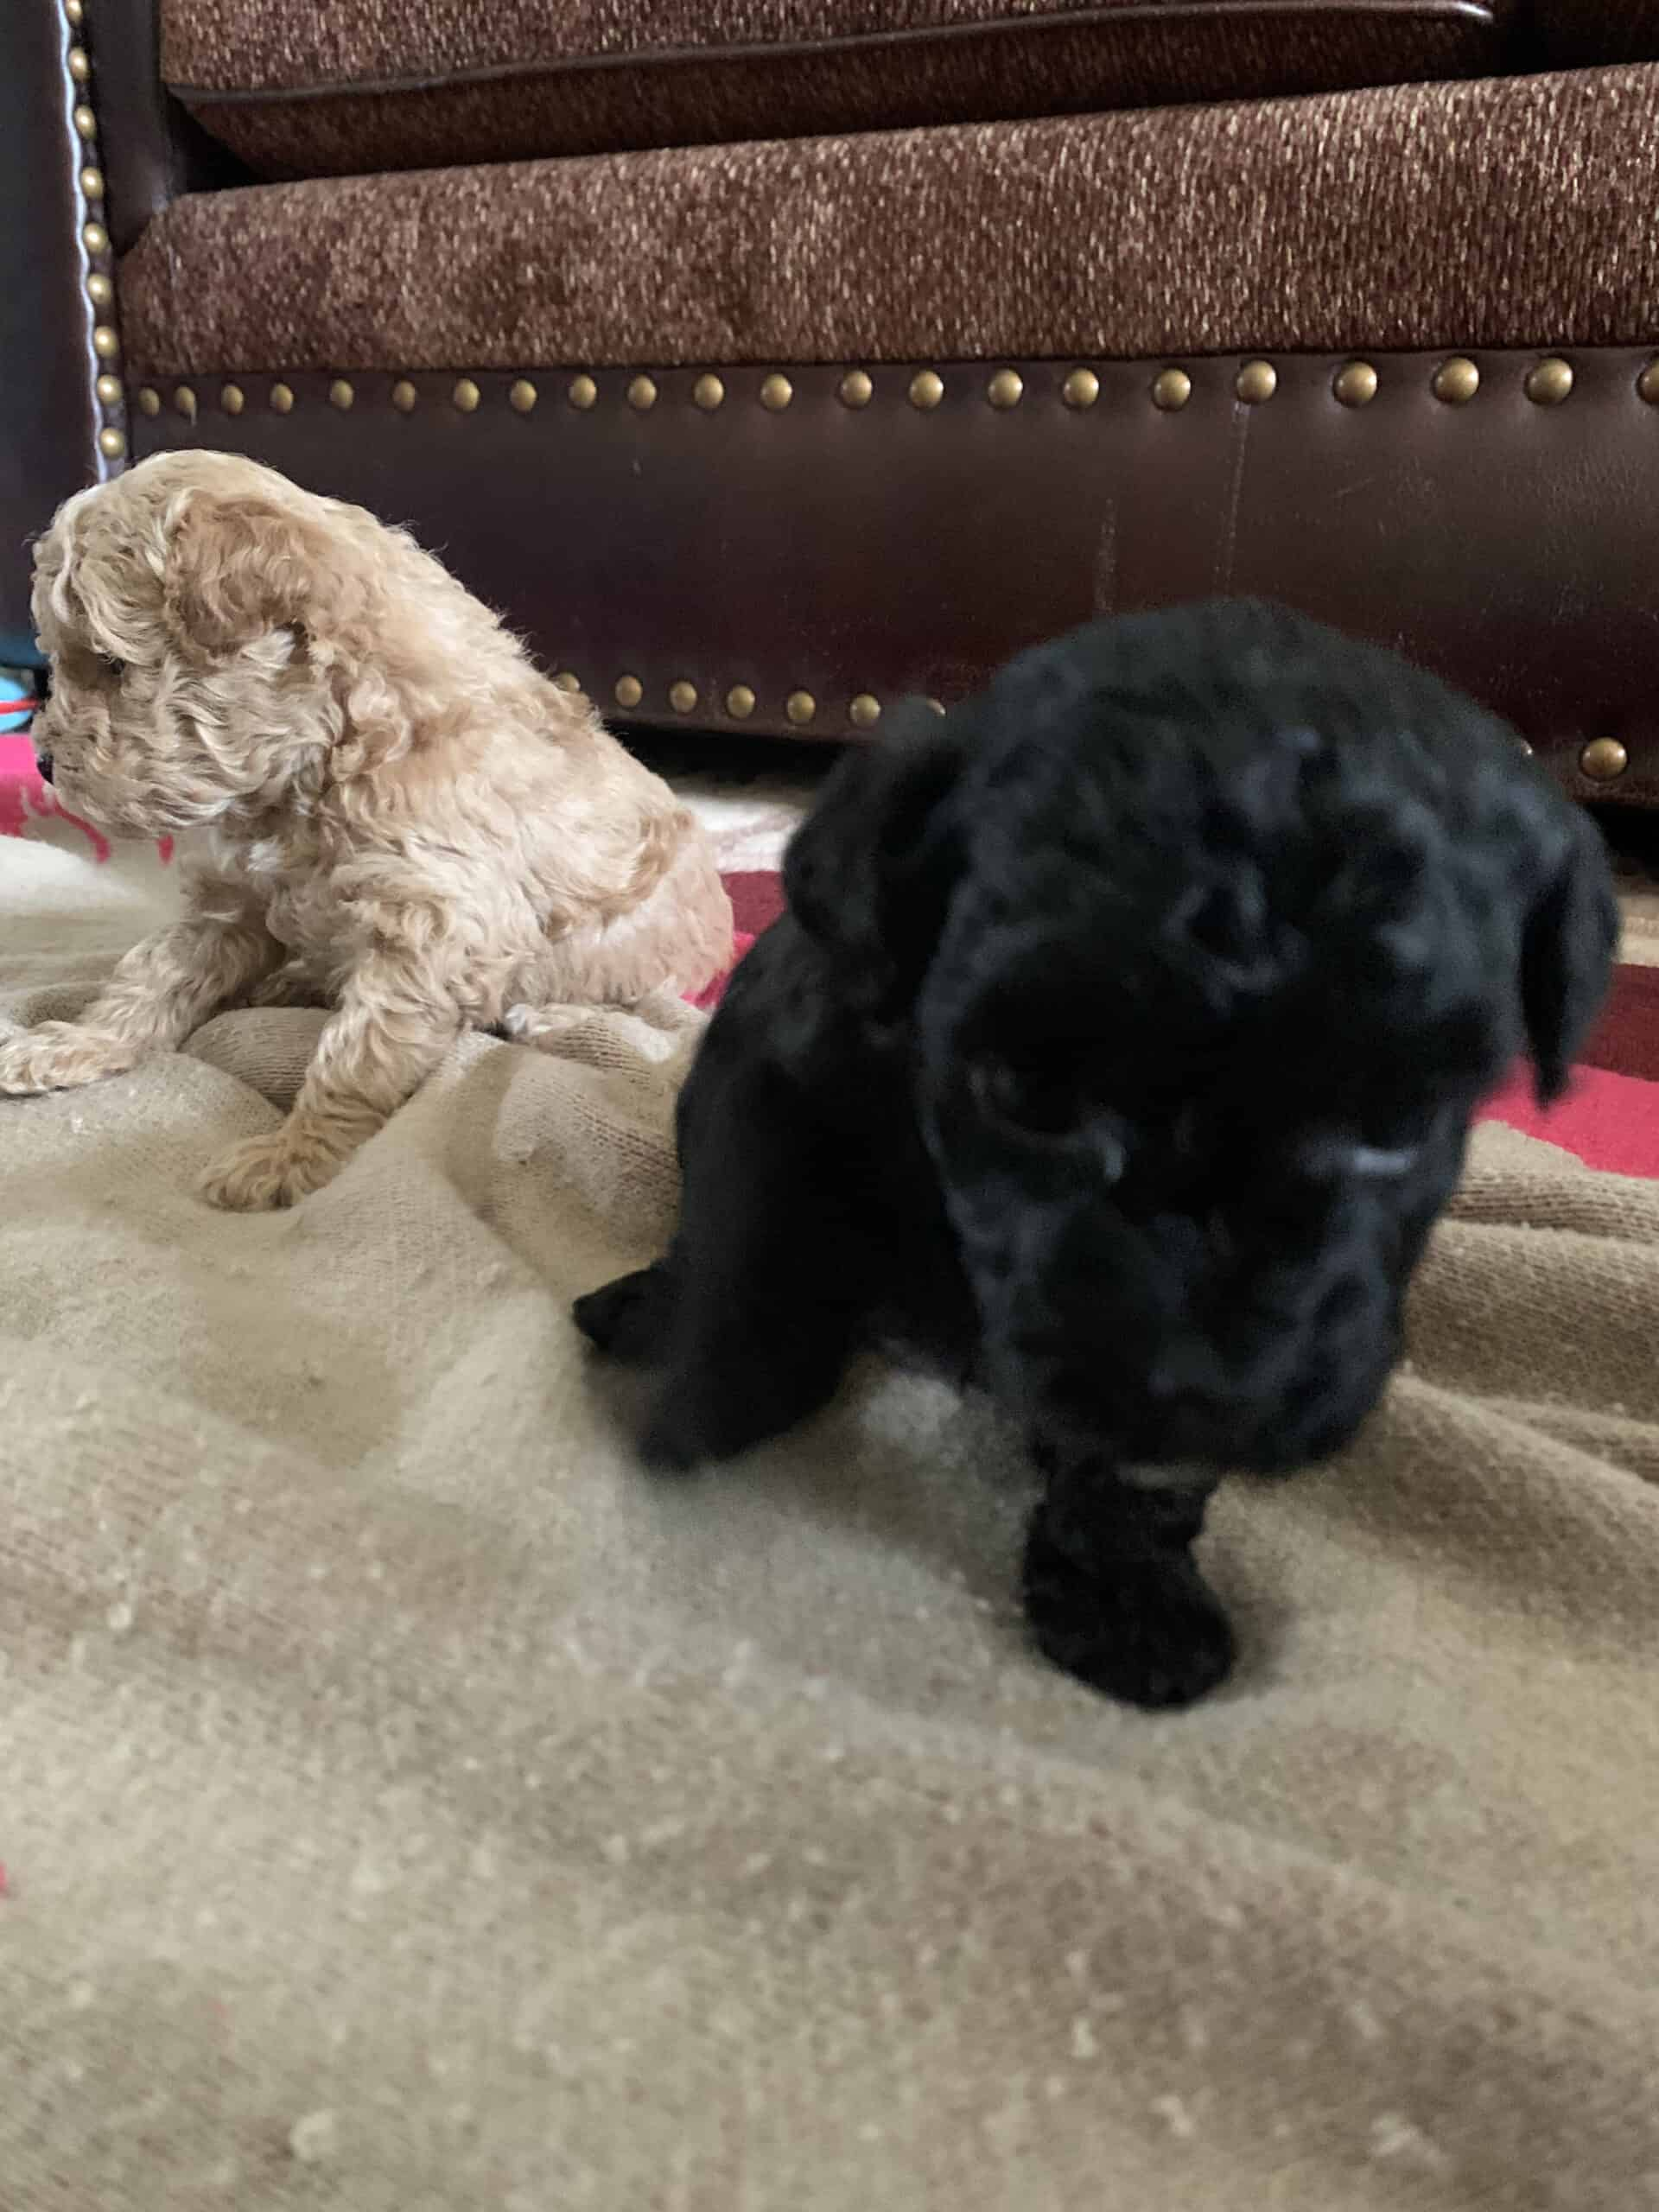 Toy poodles